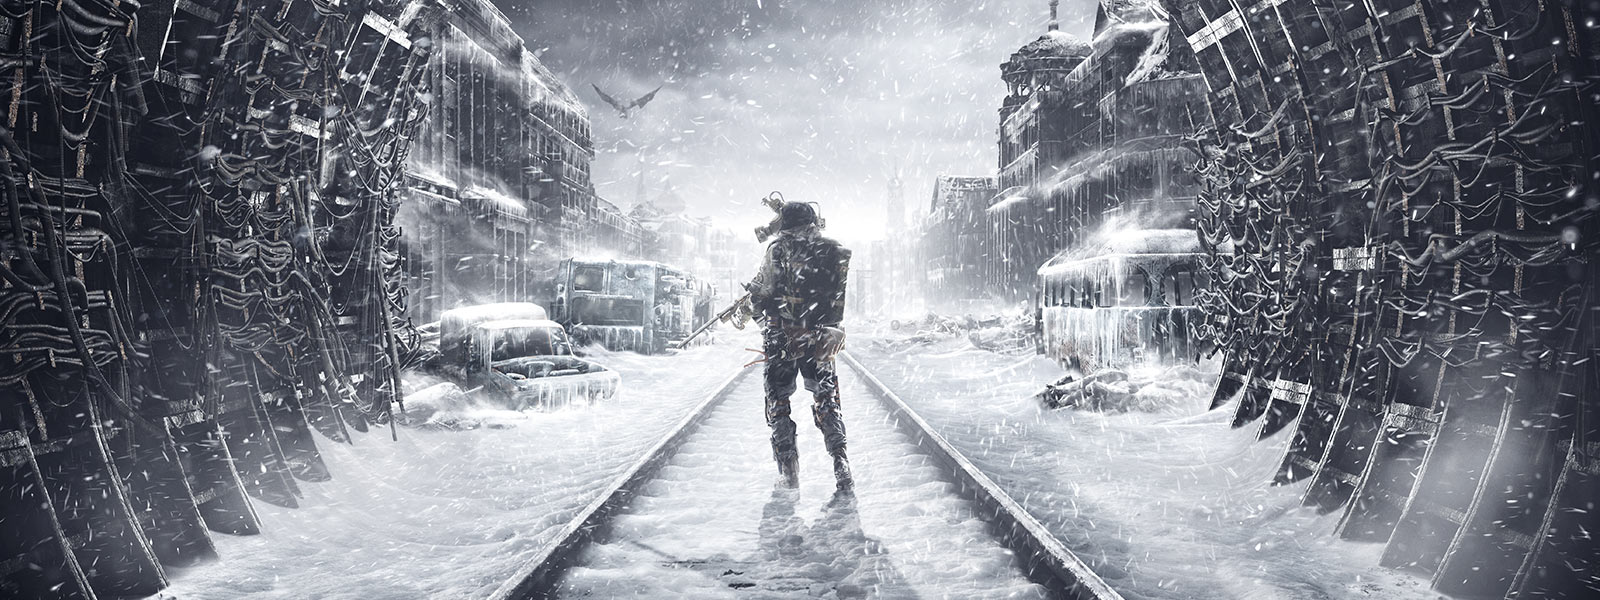 Metro Exodus: a man holding a gun stands on snow-covered tracks in a tunnel